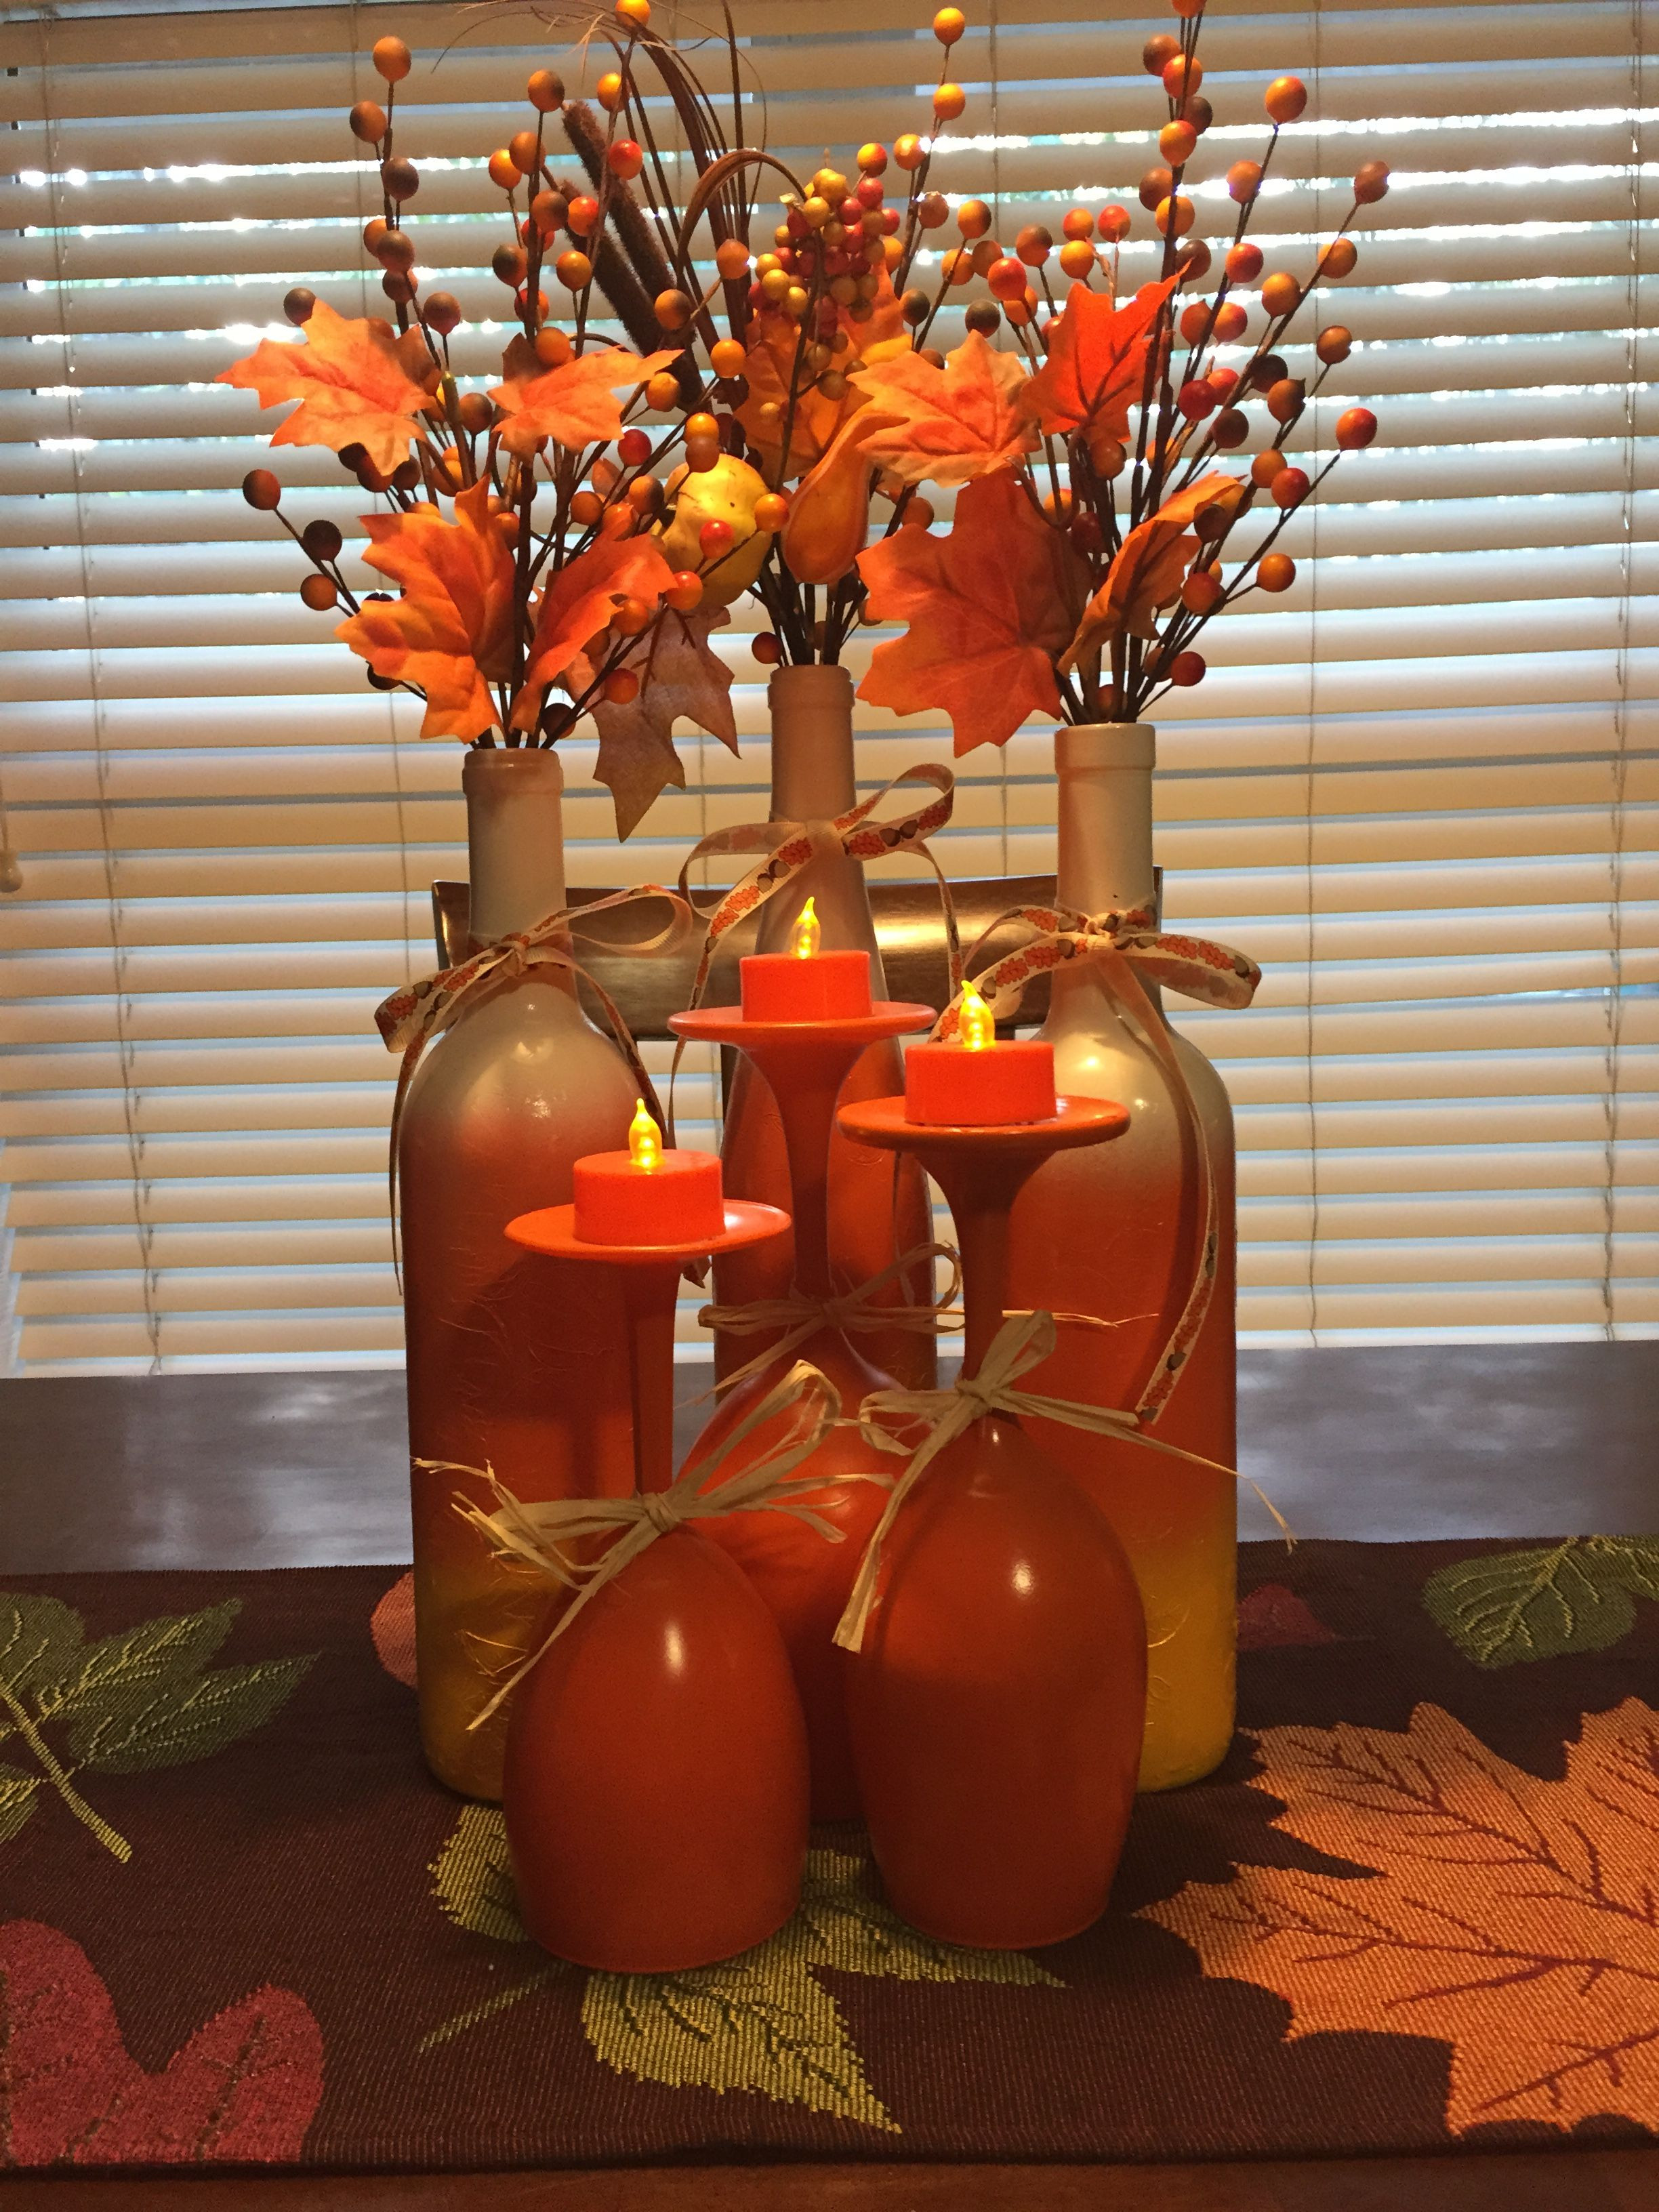 Tree wine glasses painted orange $ Tree battery operated orange tea lights wine bottles painted like candy corn $ Tree silk flowers and twigs